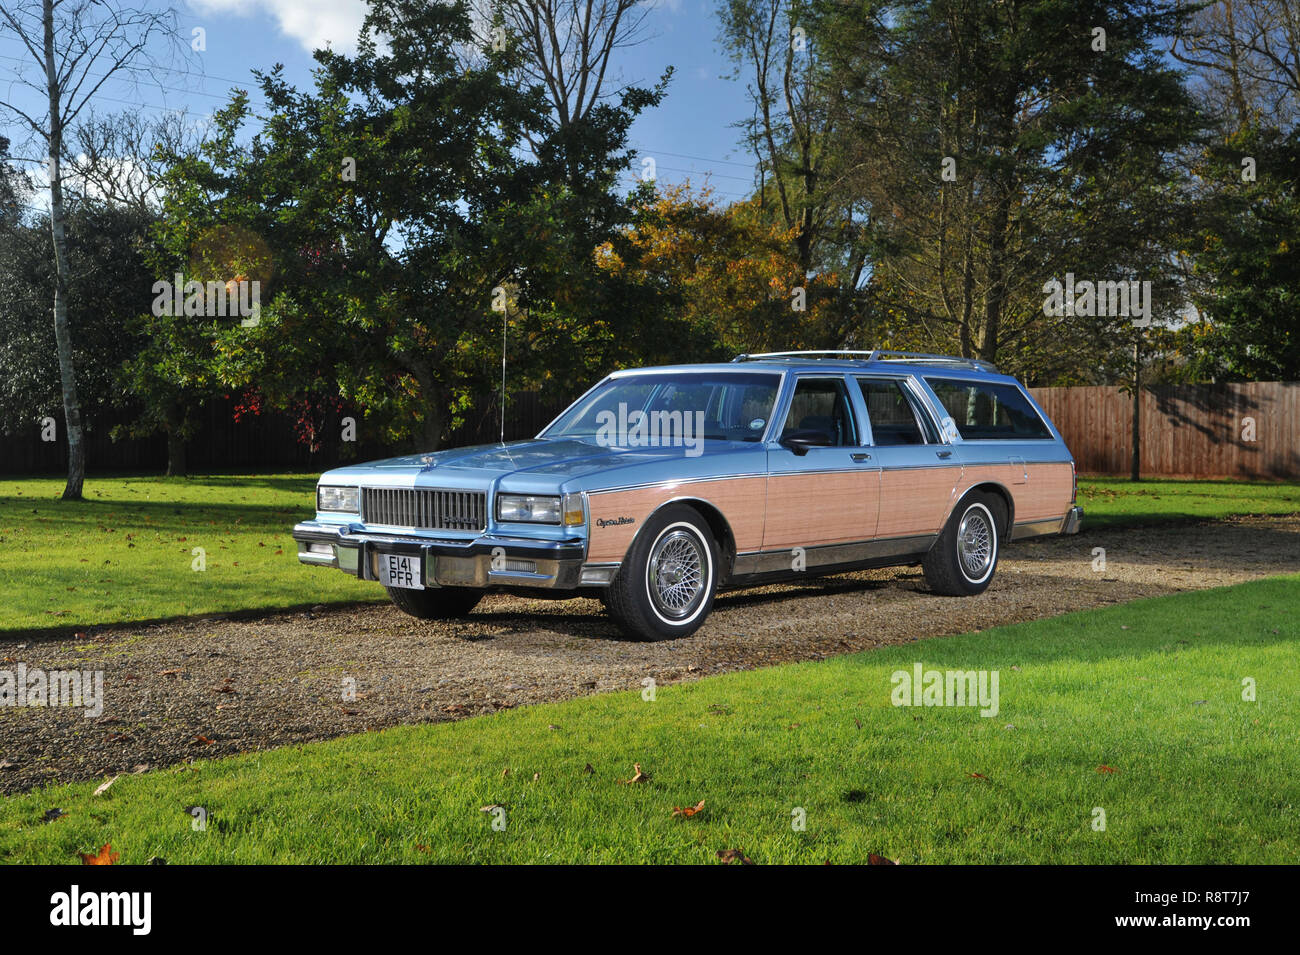 1986 Chevrolet Caprice 'Woody' station wagon, wood trimmed American family estate car - Stock Image